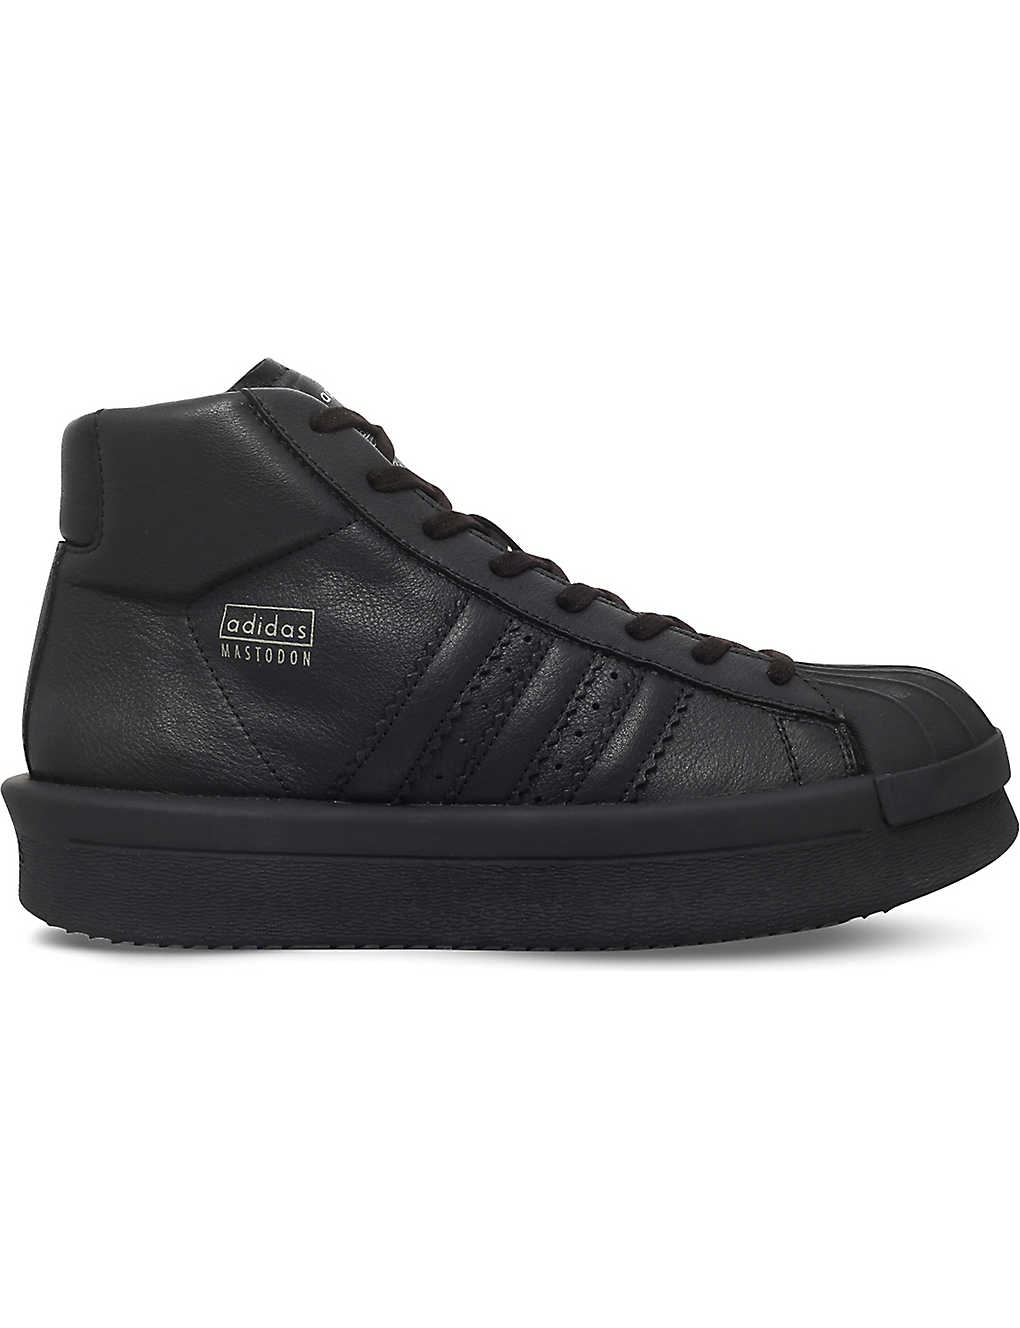 df144d6ff288 RICK OWENS - Adidas x Rick Owens Mastodon Pro Model leather sneakers ...